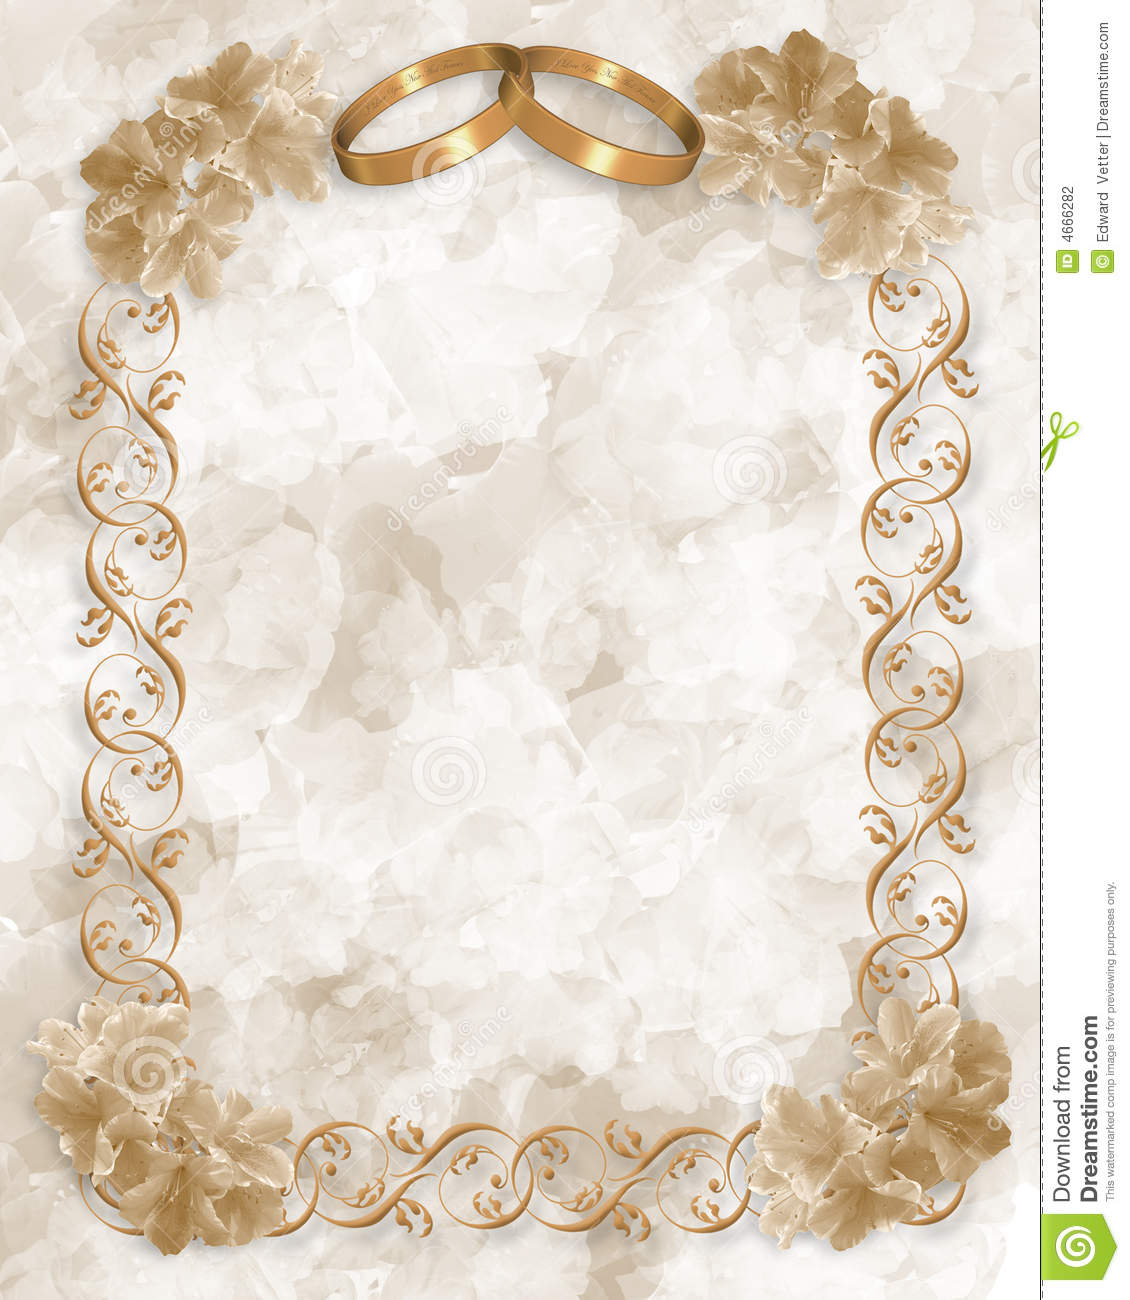 Wedding rings and flowers wallpaper